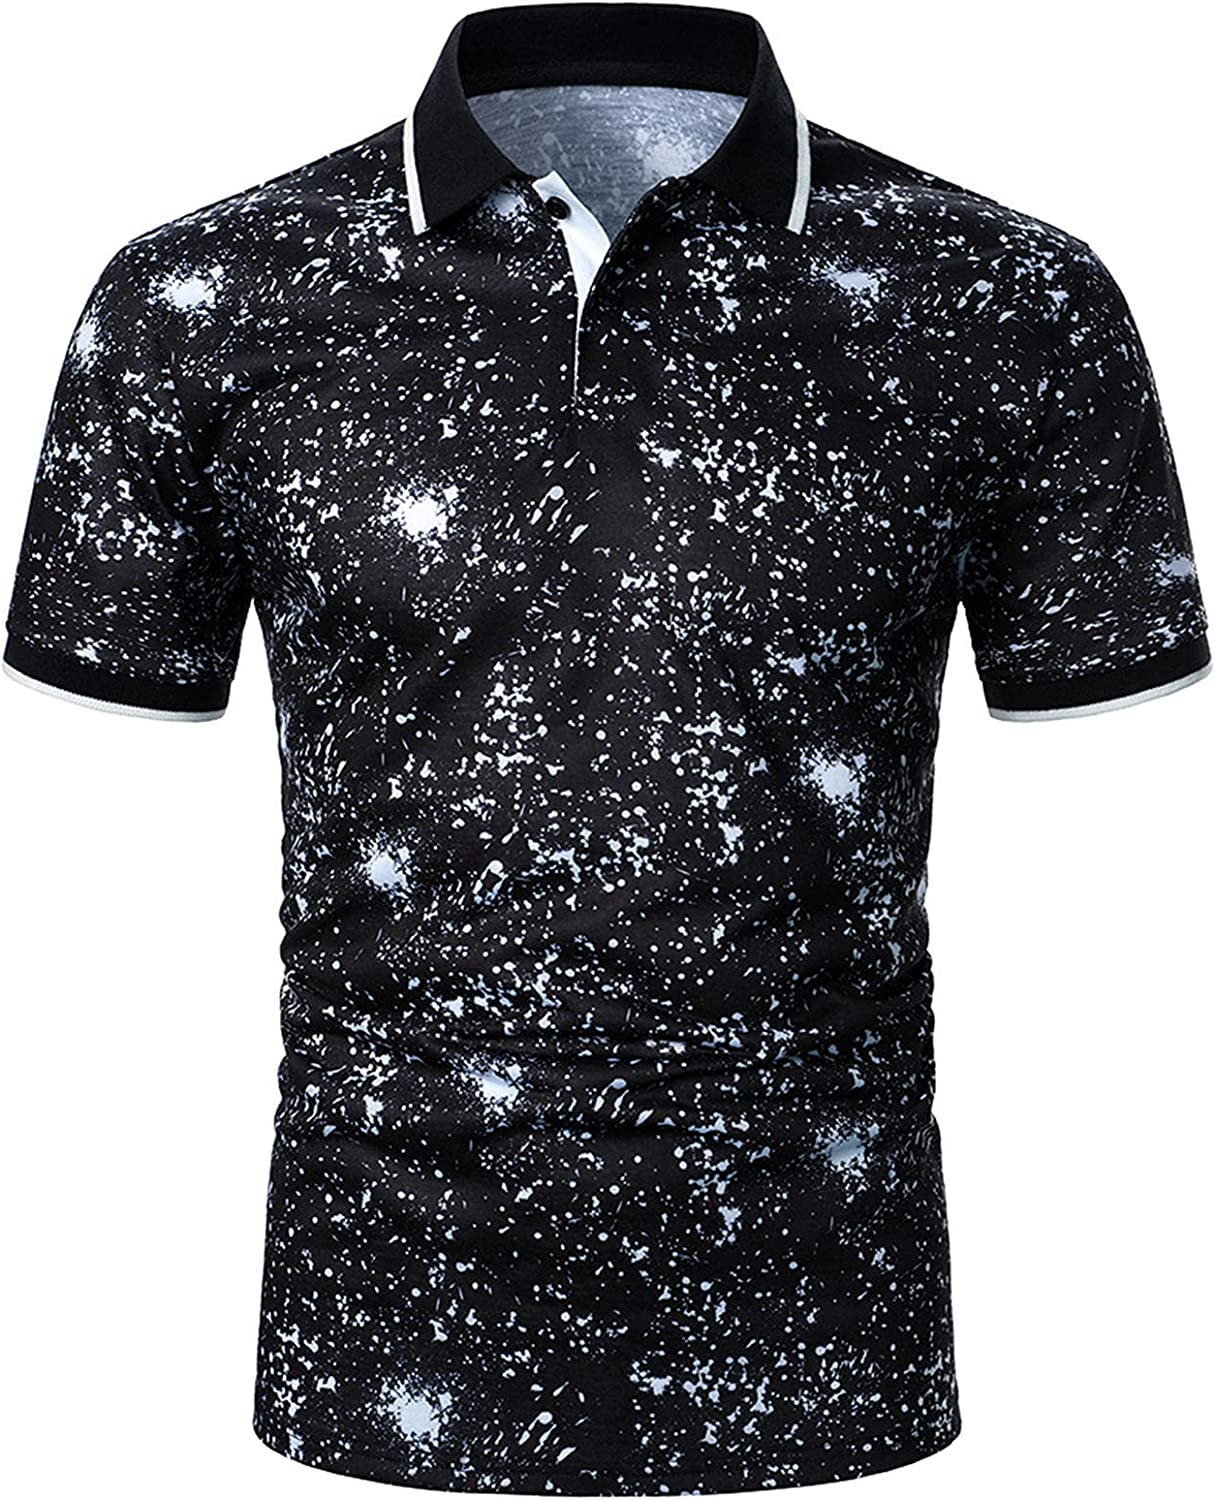 DZQUY Men's Summer Casual Slim Fit Polo Shirts Short Sleeve Hipster Printed Outdoor Athletic Soft Work T-Shirts Tops